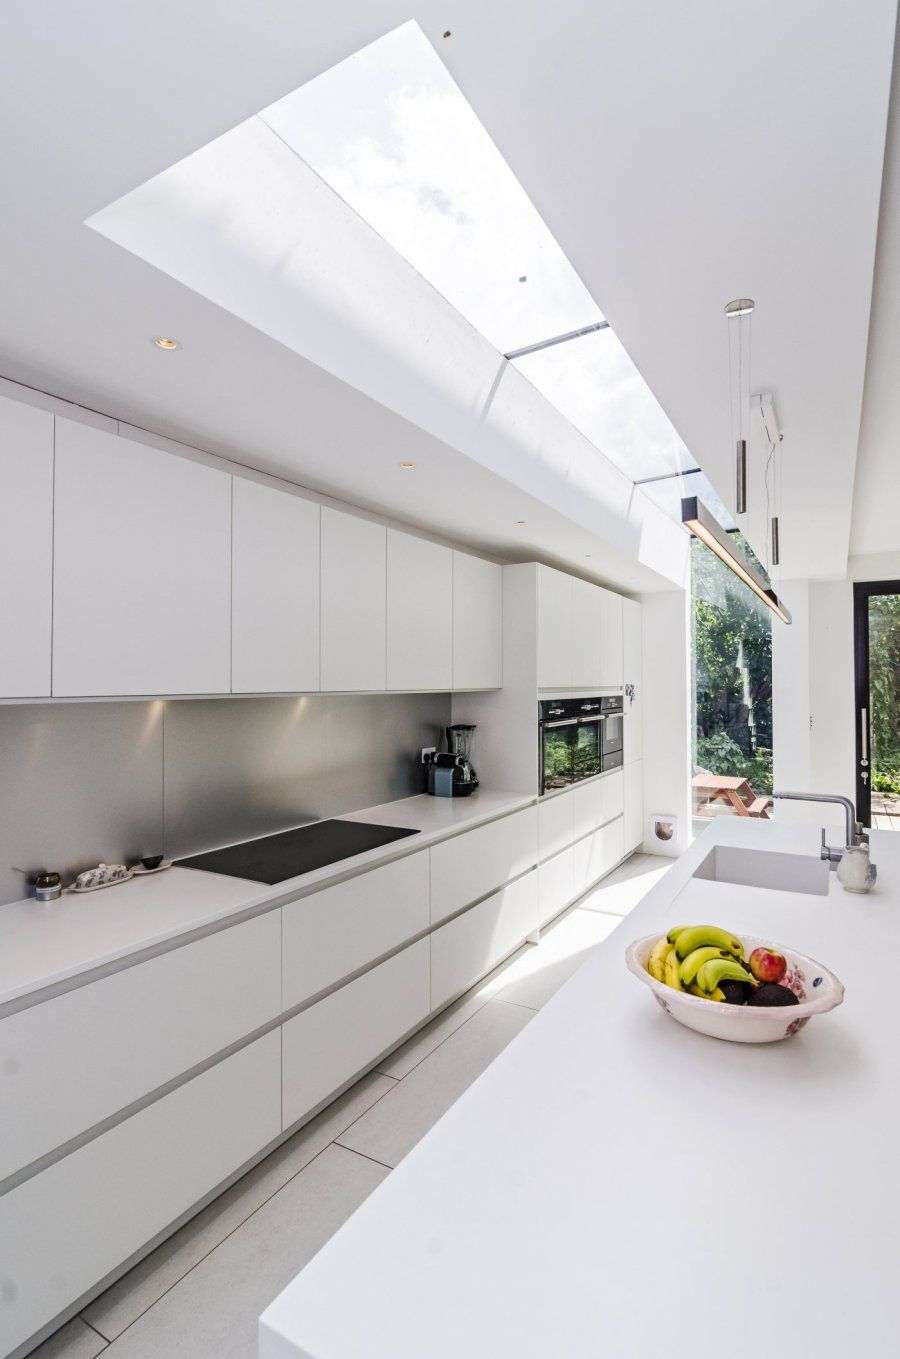 White minimal modern handleless kitchen. Pronorm Y-Line, Corian, Siemens. London Victorian side return conversion. #whitegalleykitchens